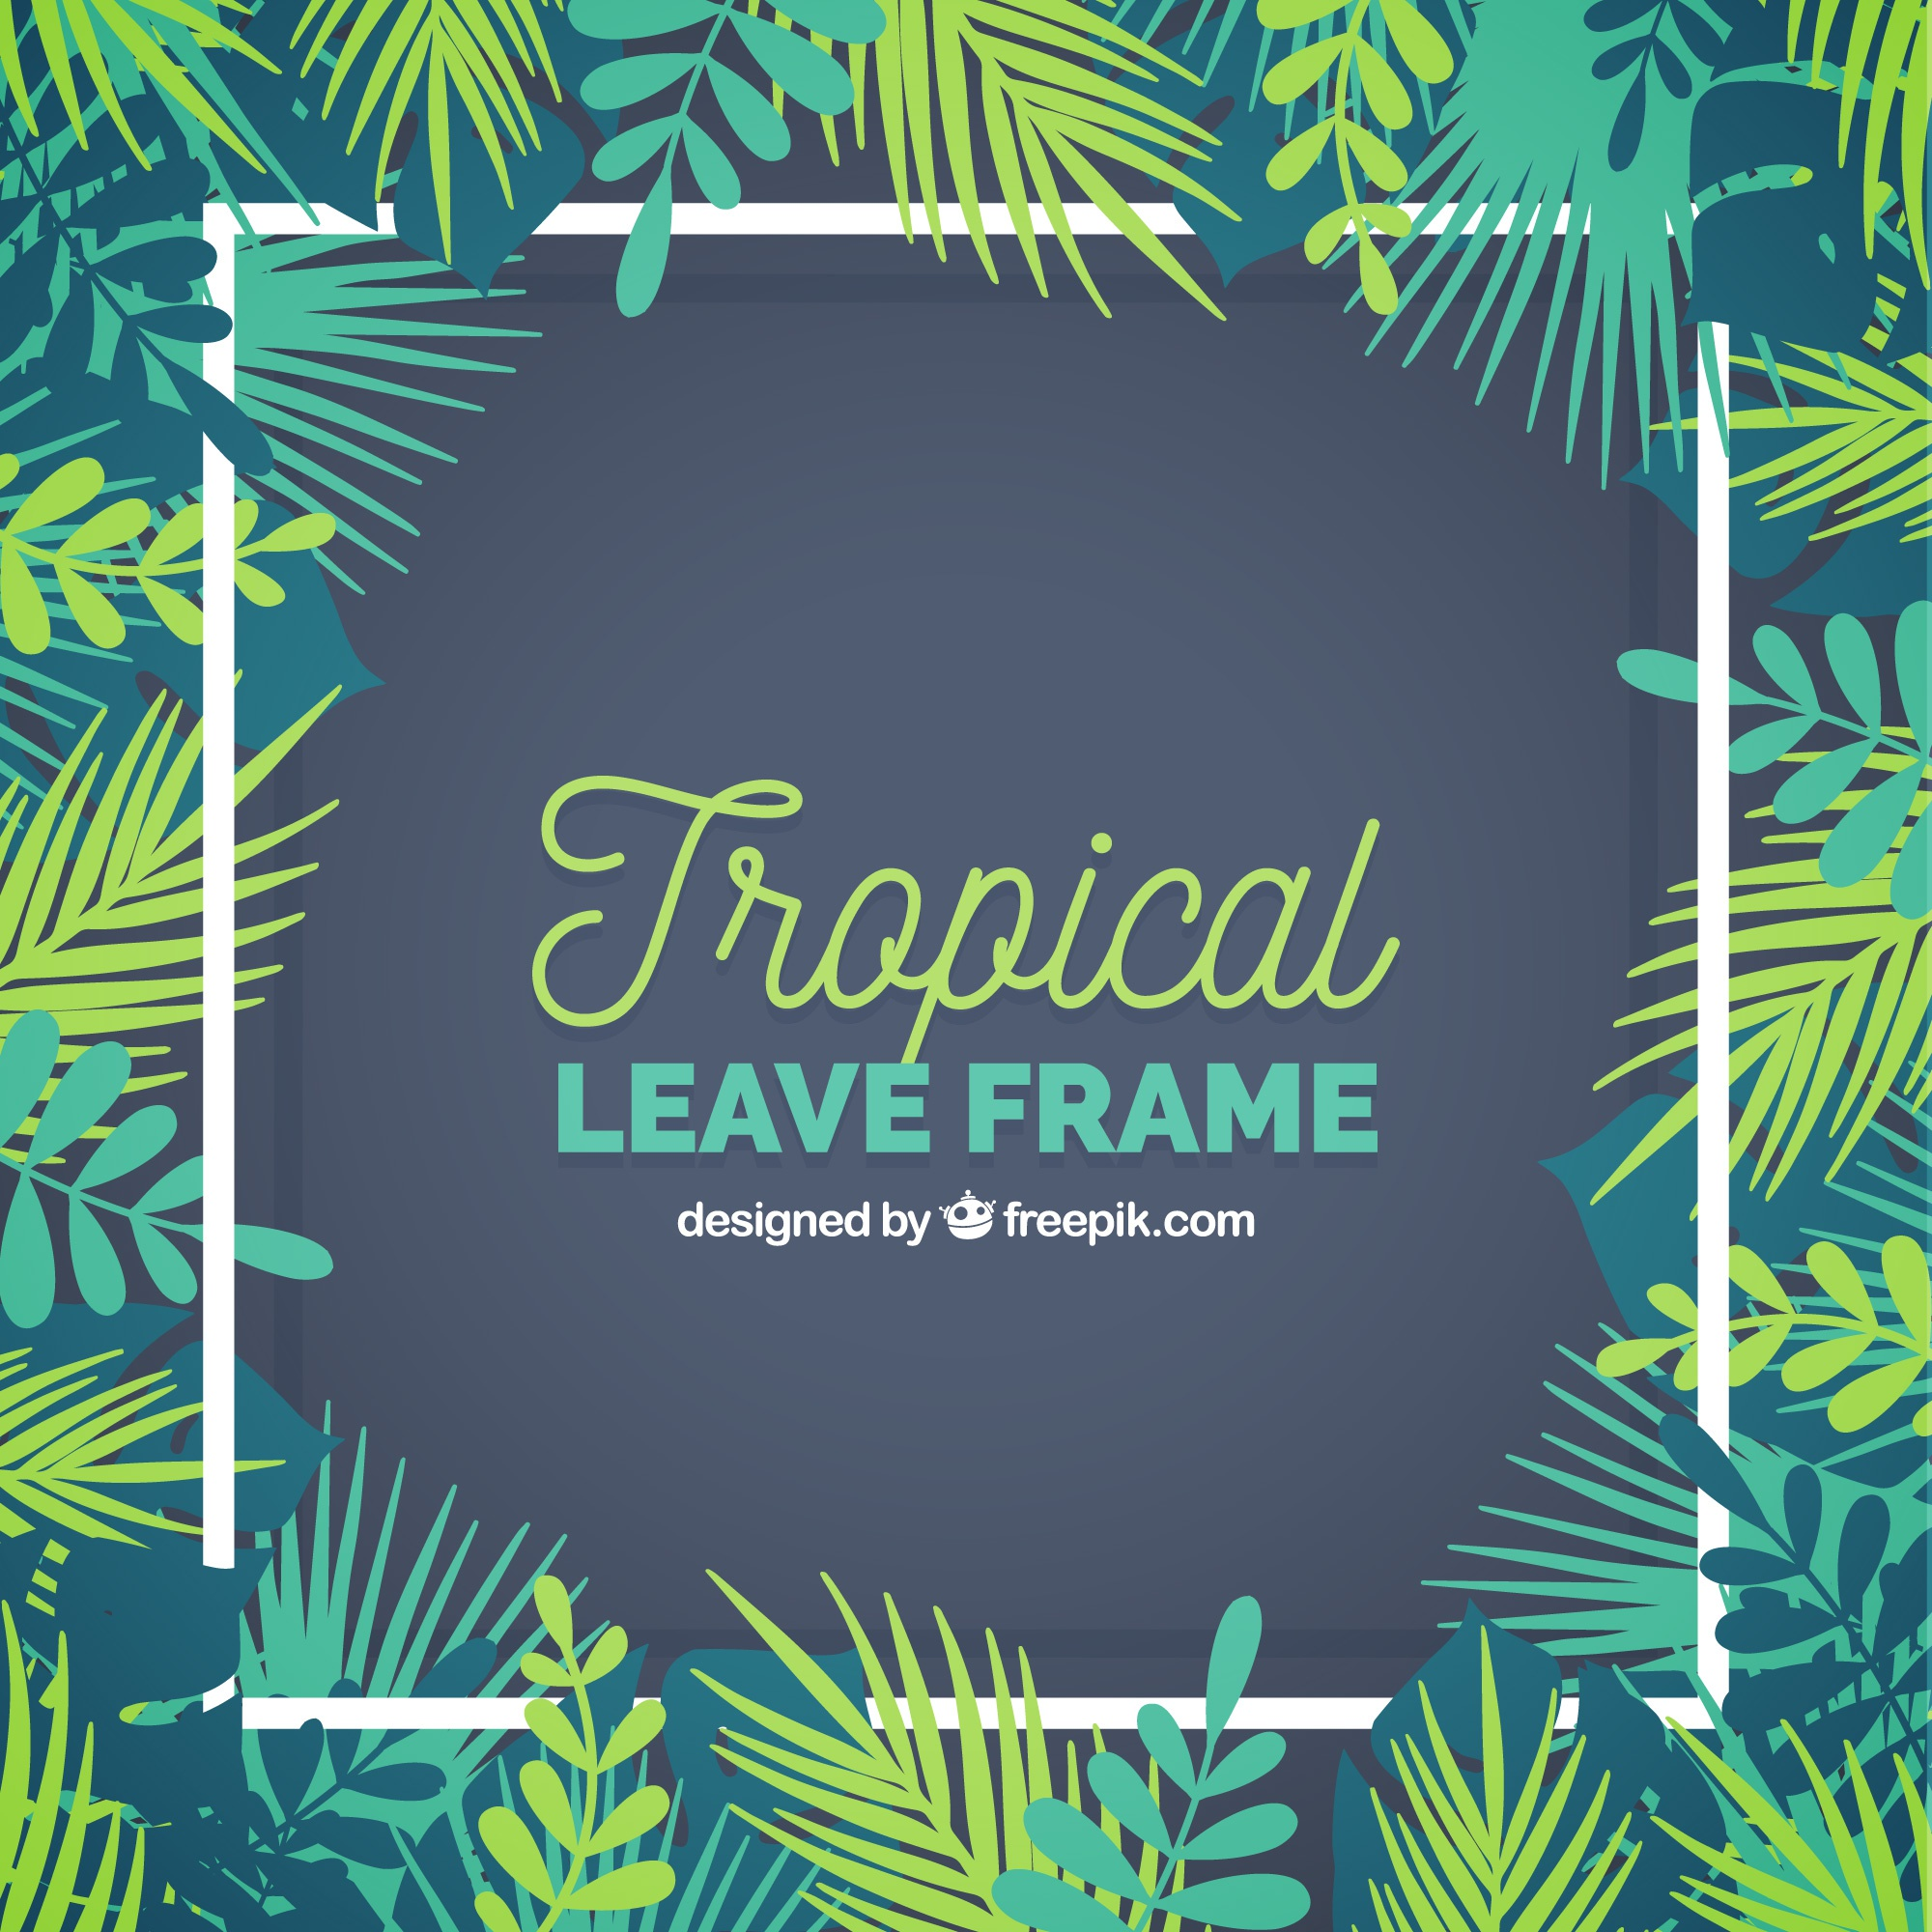 Tropical leave frame